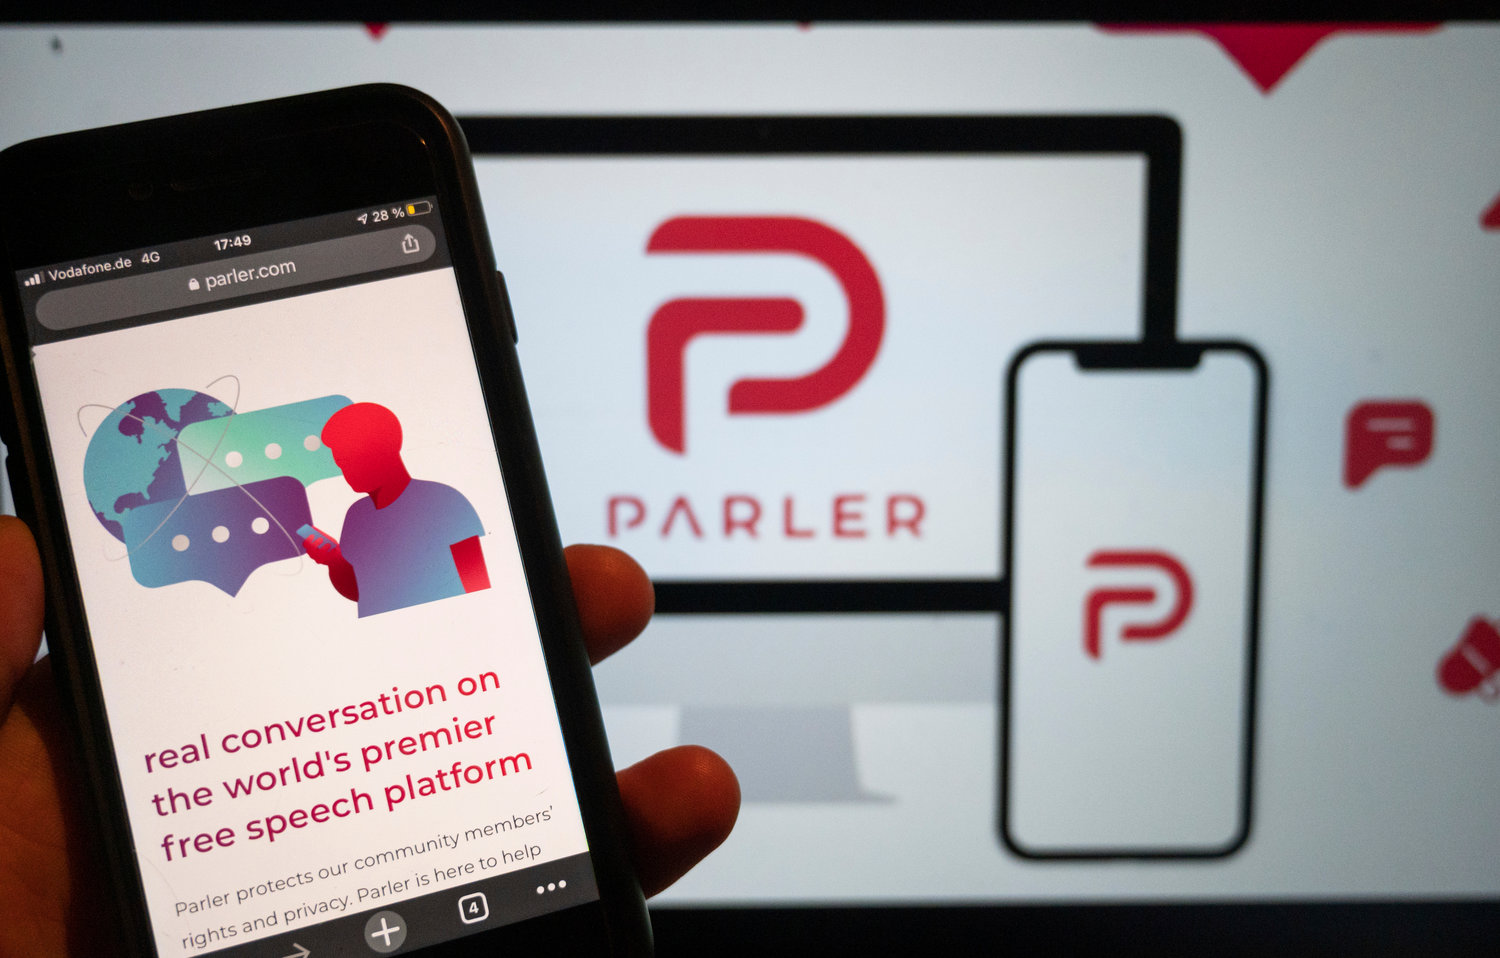 The website of the social media platform Parler is displayed in Berlin, Jan. 10, 2021. The platform's logo is on a screen in the background. The conservative-friendly social network Parler was booted off the internet Monday, Jan. 11, over ties to last week's siege on the U.S. Capitol, but not before hackers made off with an archive of its posts, including any that might have helped organize or document the riot. (Christophe Gateau/dpa via AP)